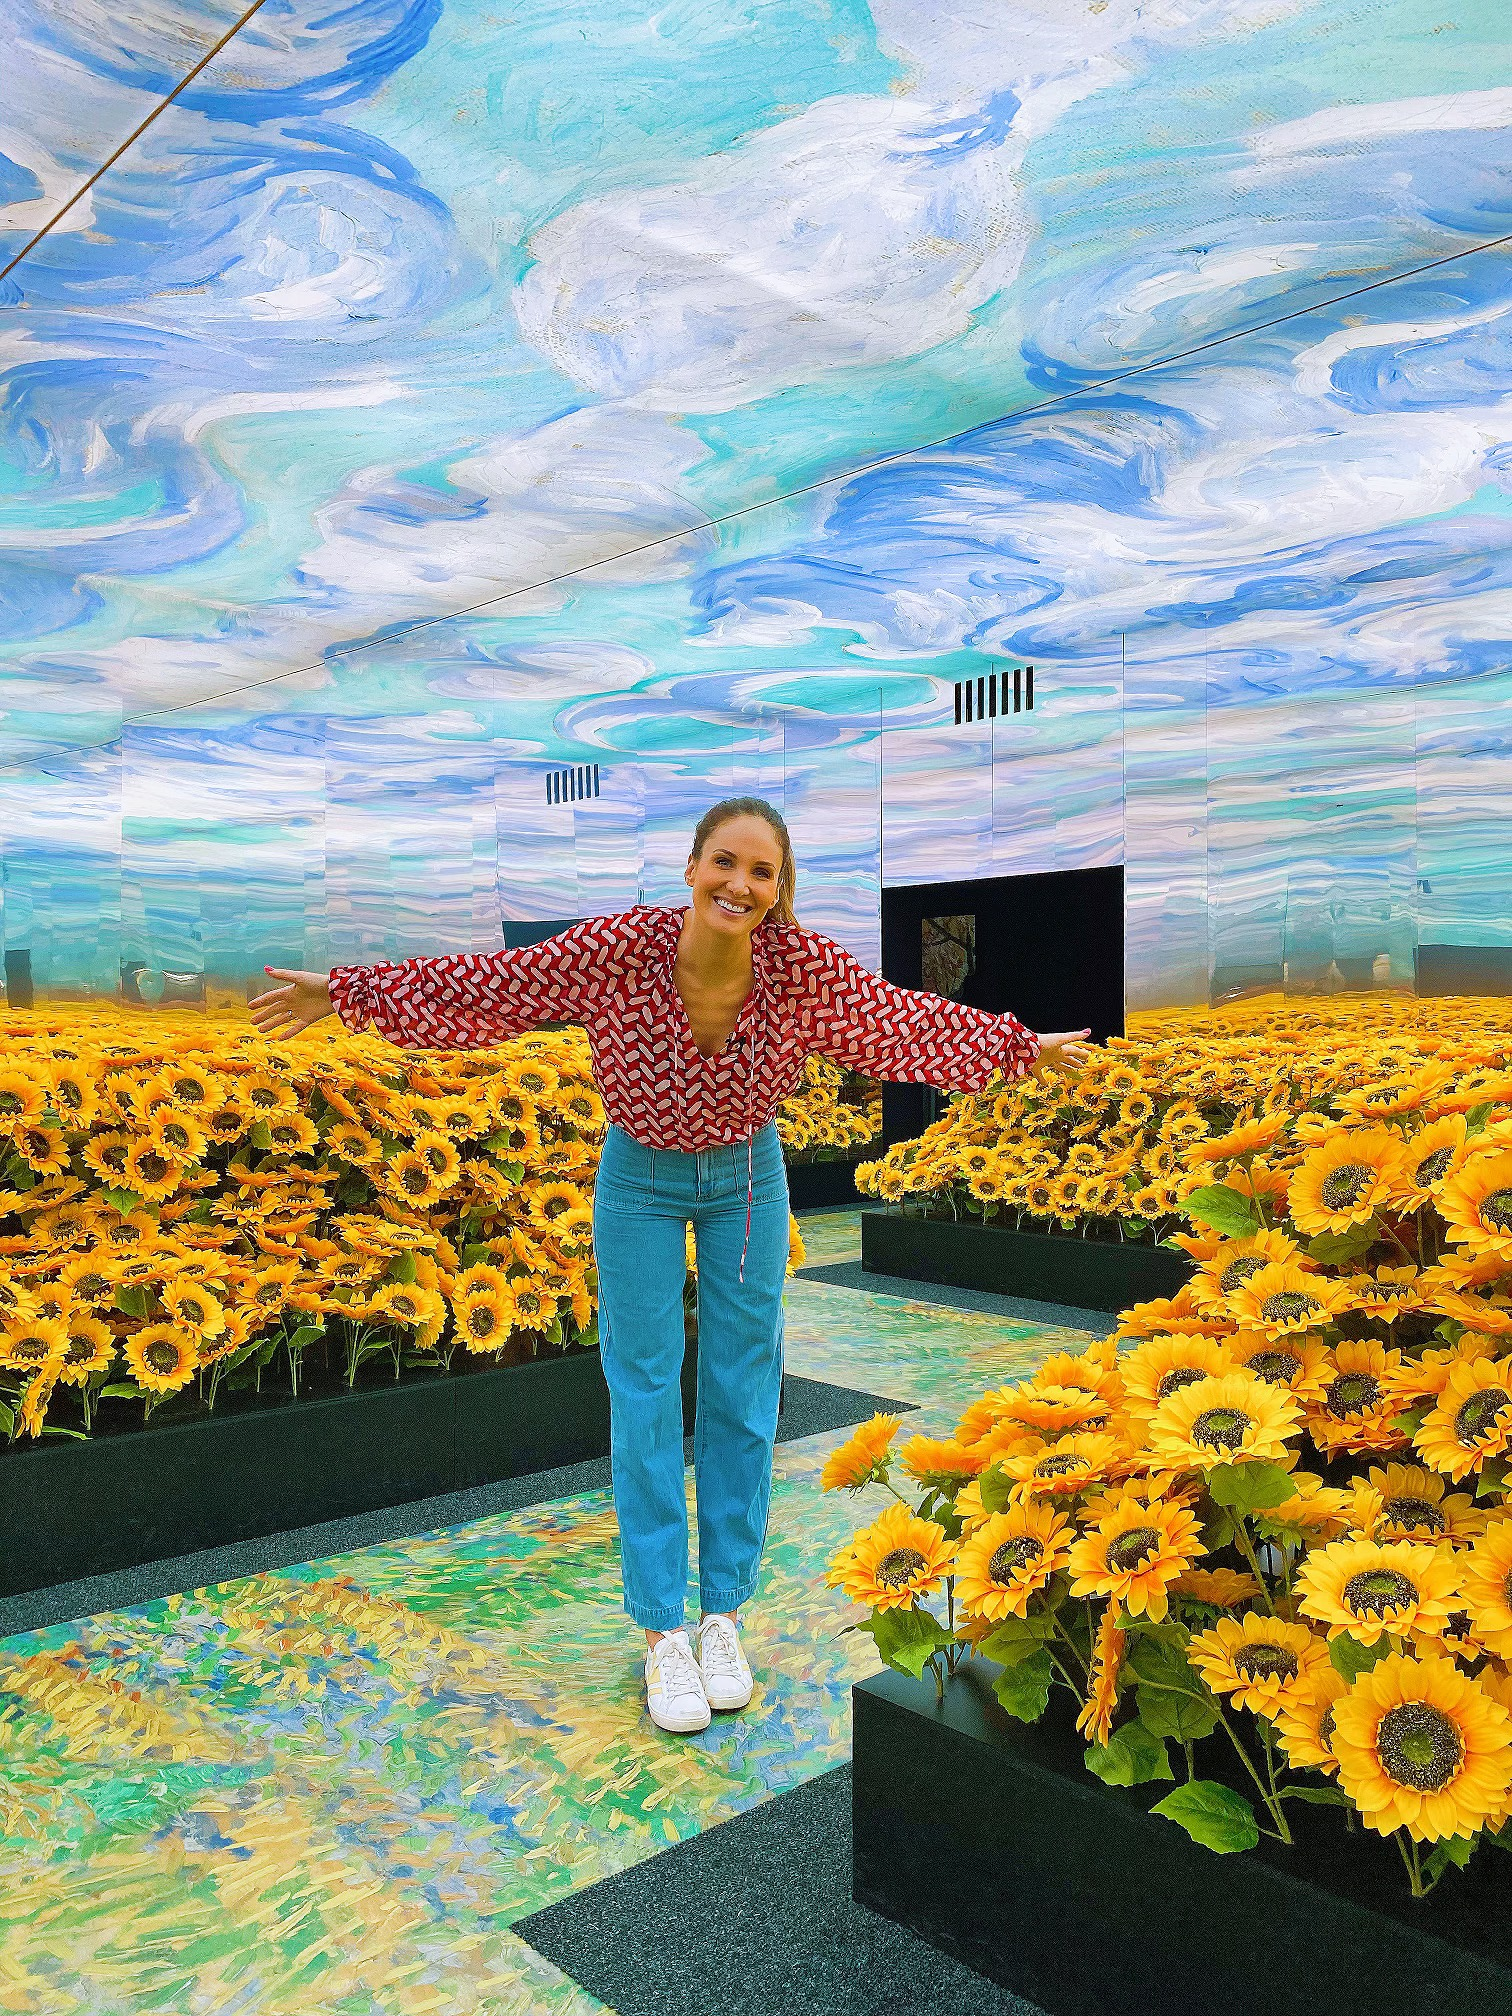 WIN 2 x family passes for you and your bestie to see the Van Gogh Alive experience!